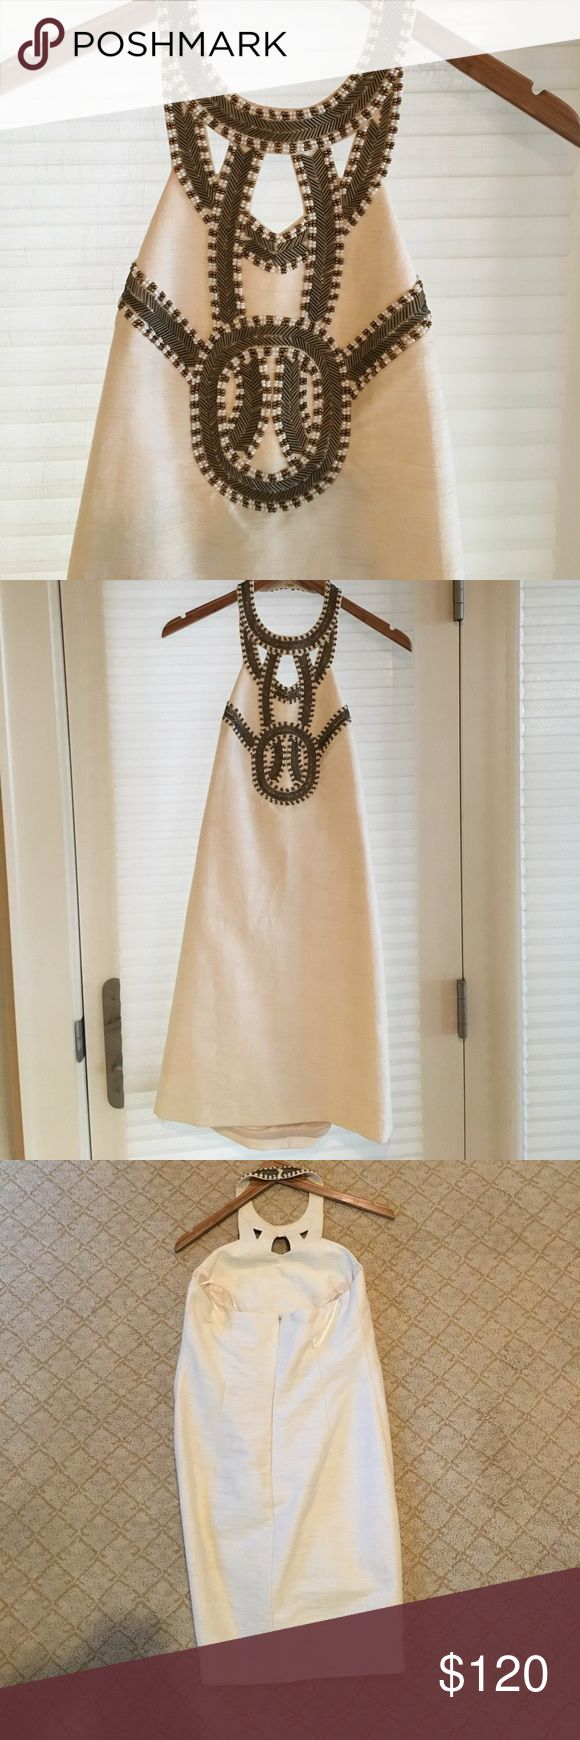 Trina Turk dress Great summer dress for any occasion. Perfect condition Trina Turk Dresses